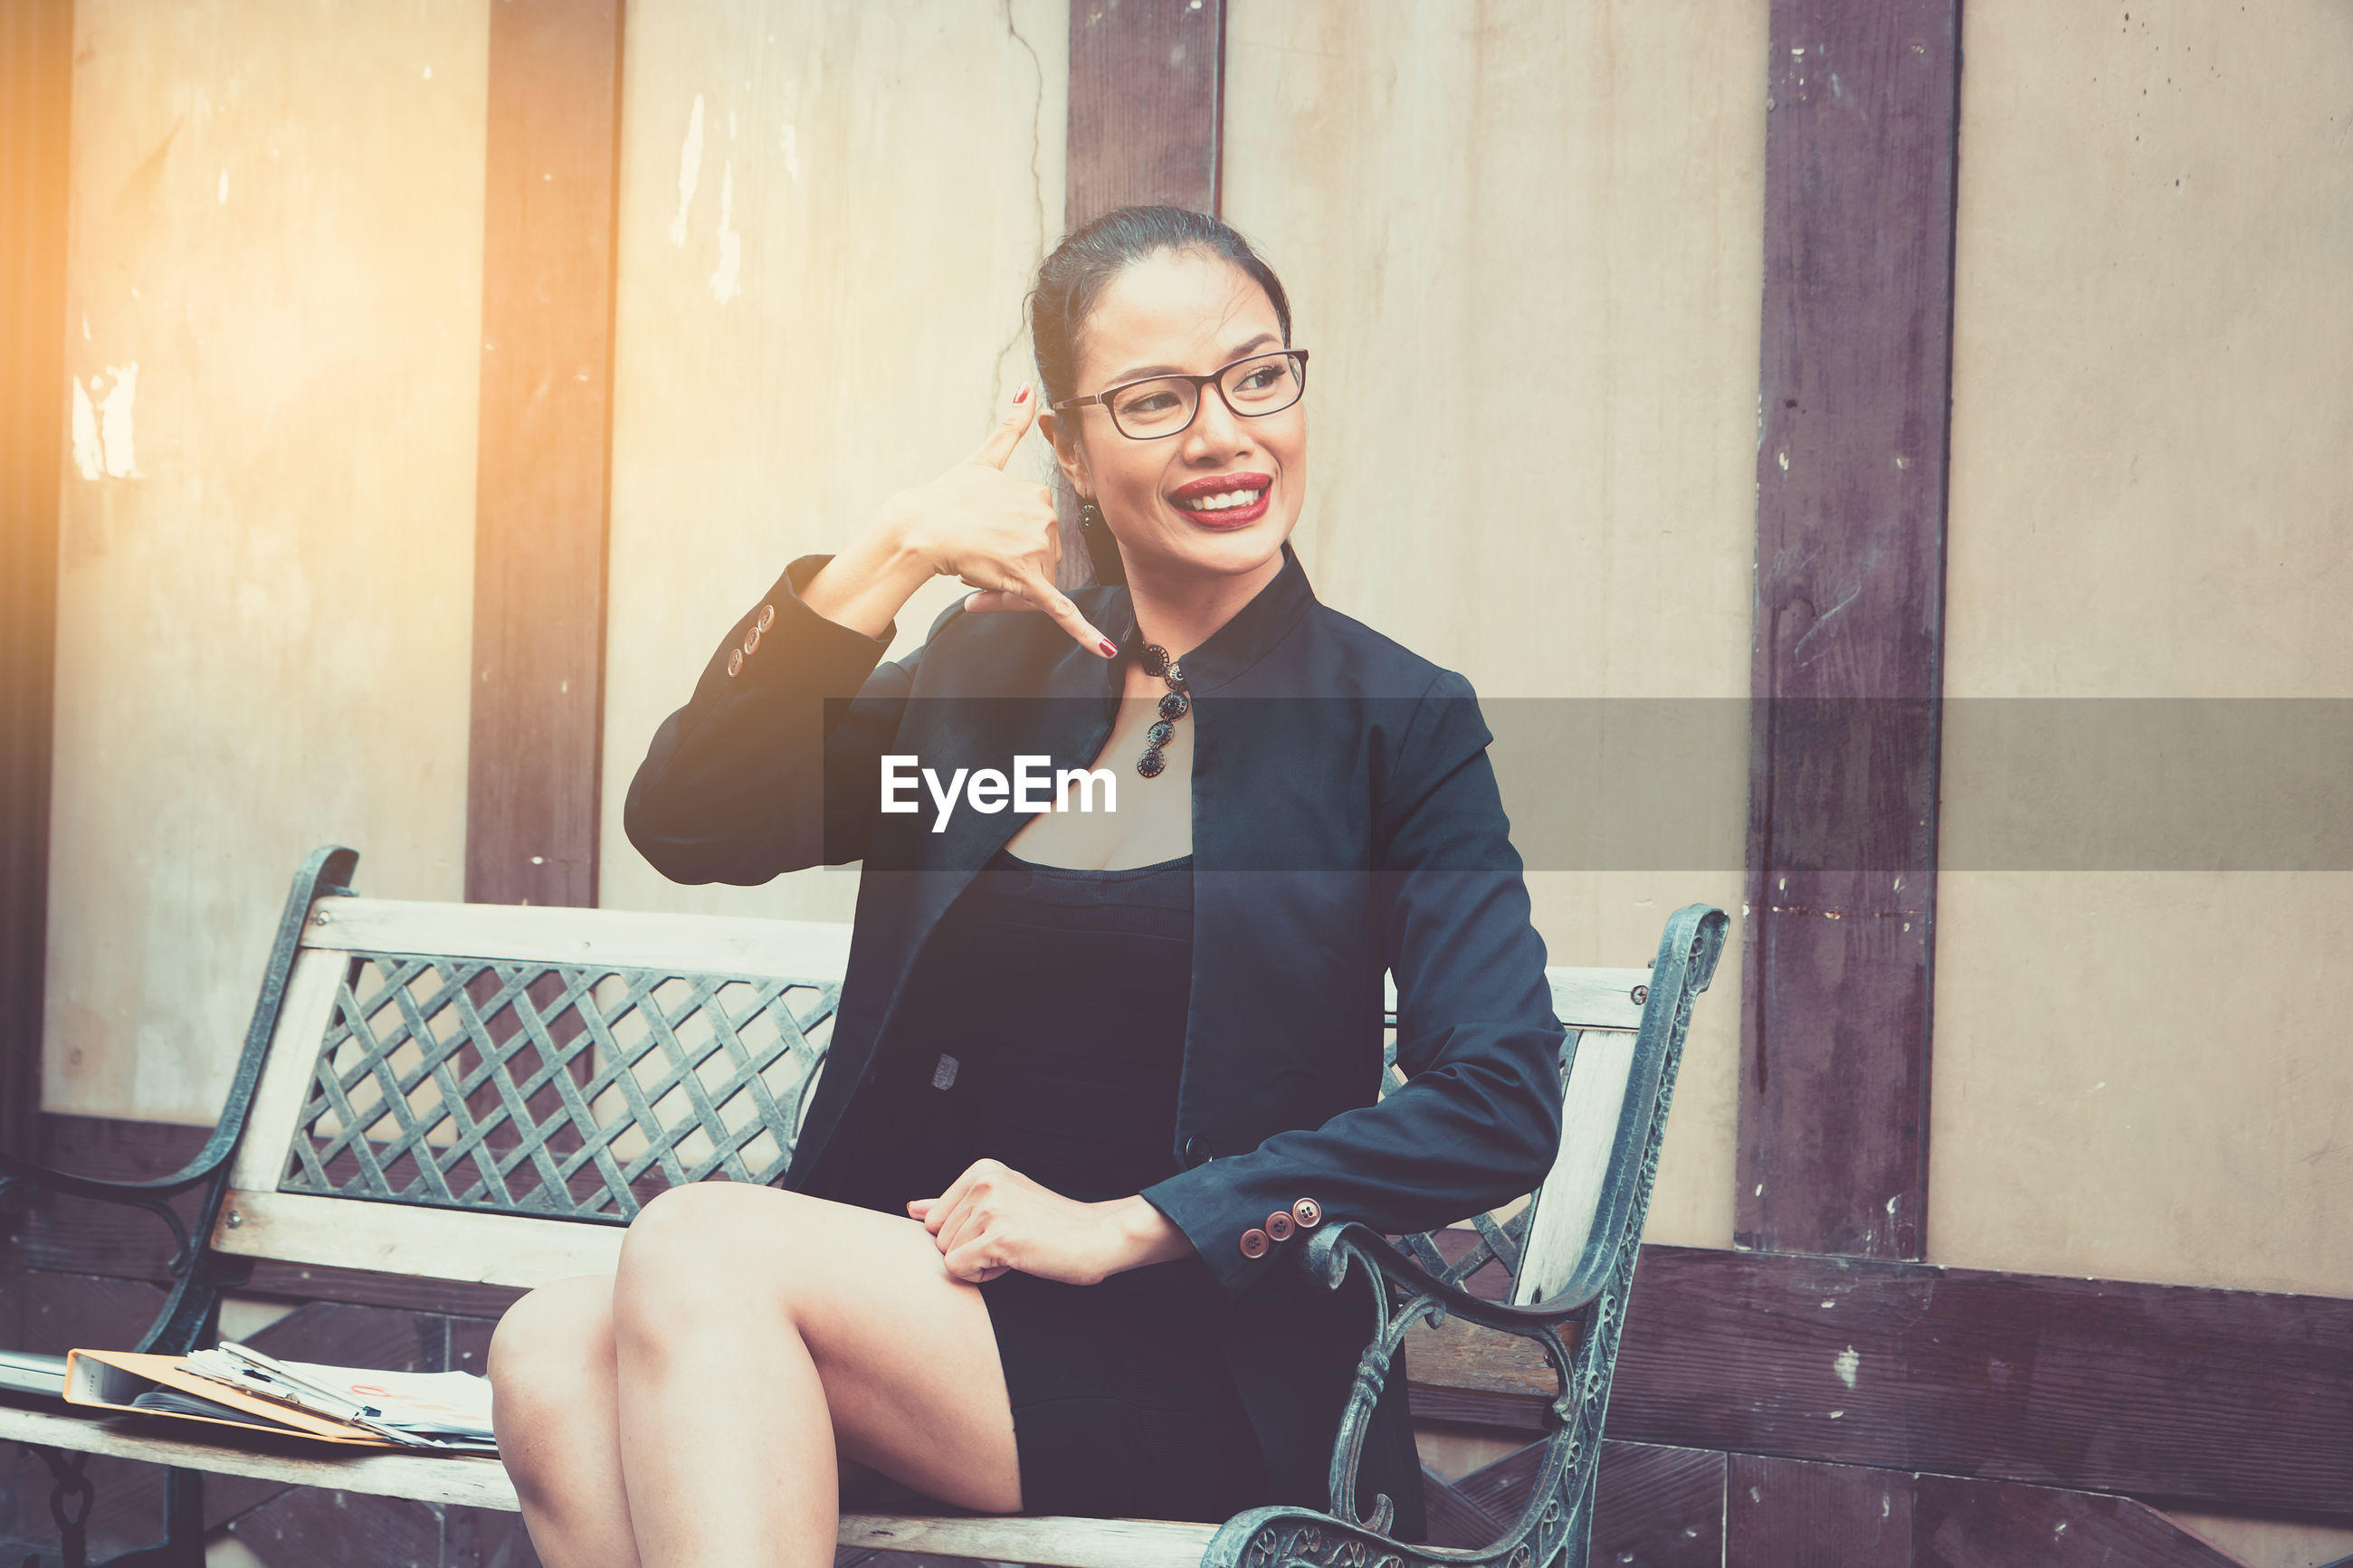 Smiling woman gesturing while sitting on bench at footpath